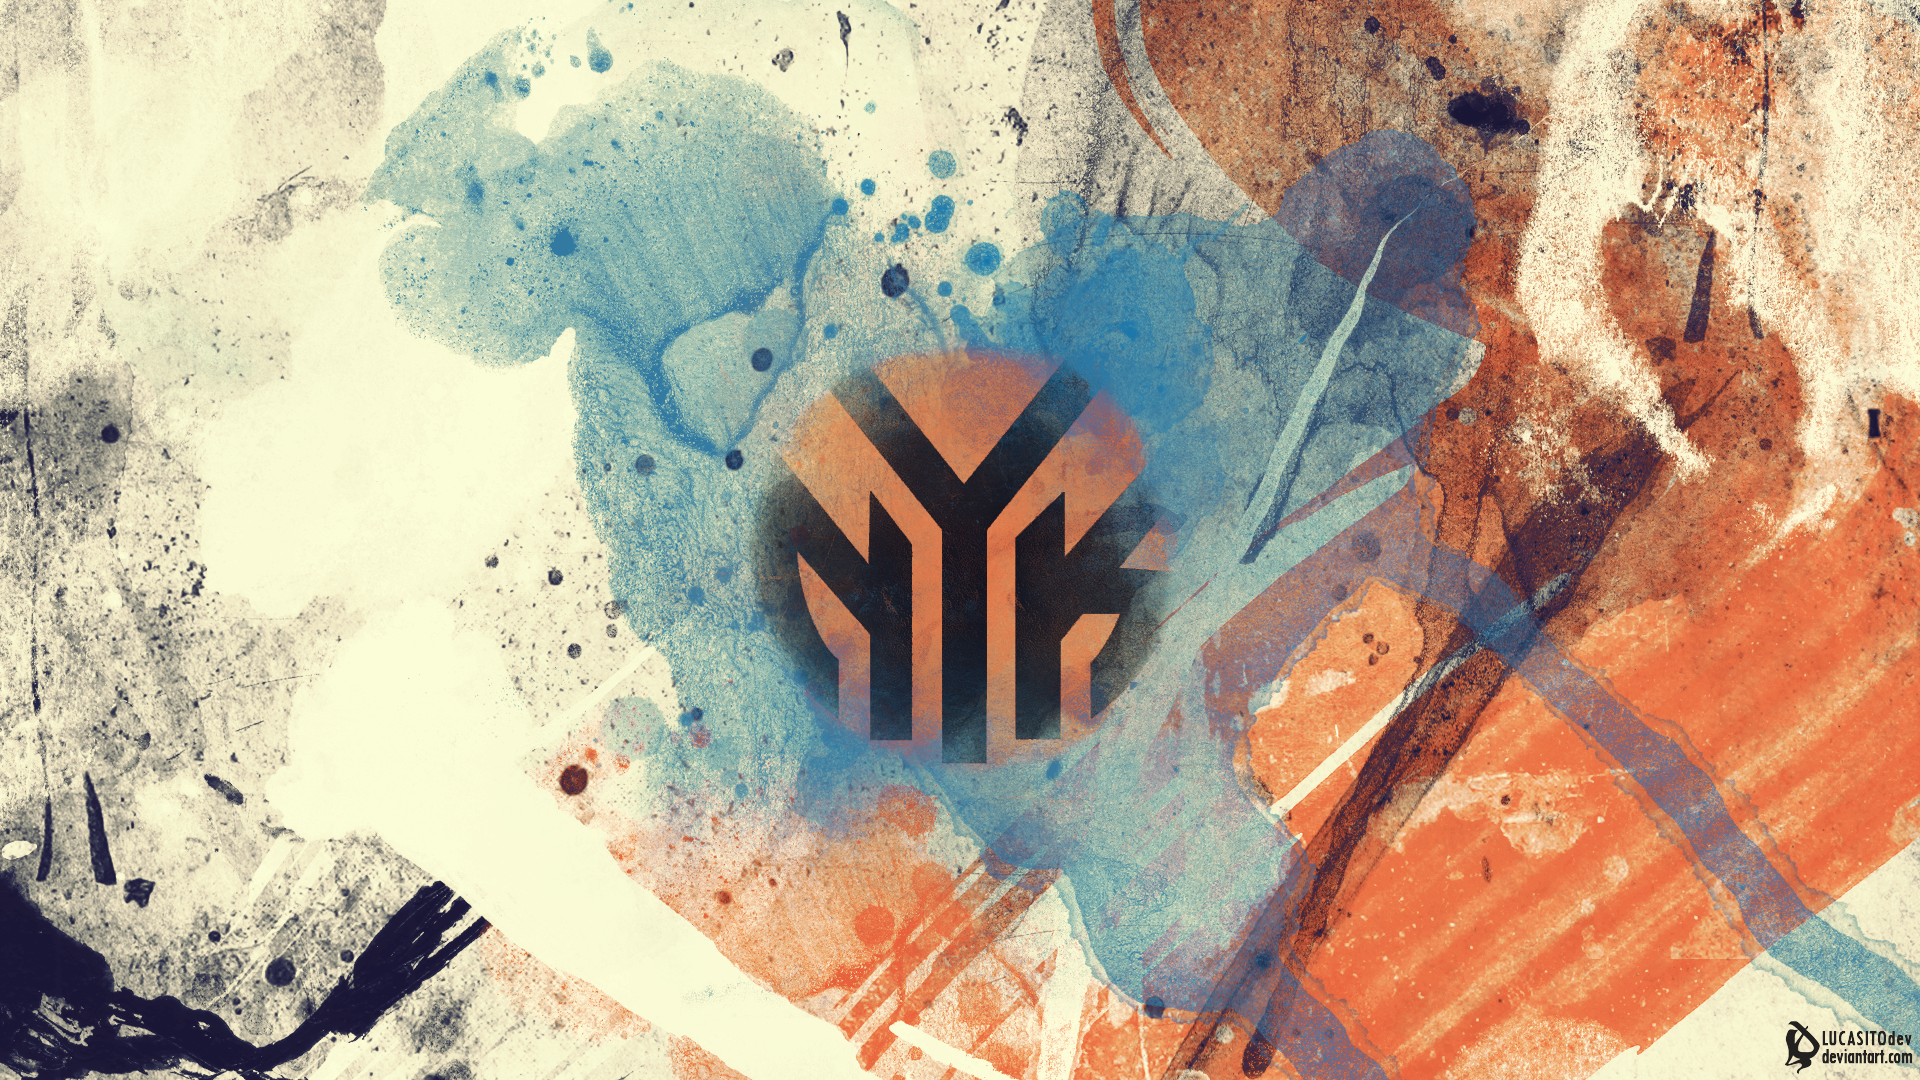 New York Knicks Wallpaper by lucasitodesign on DeviantArt